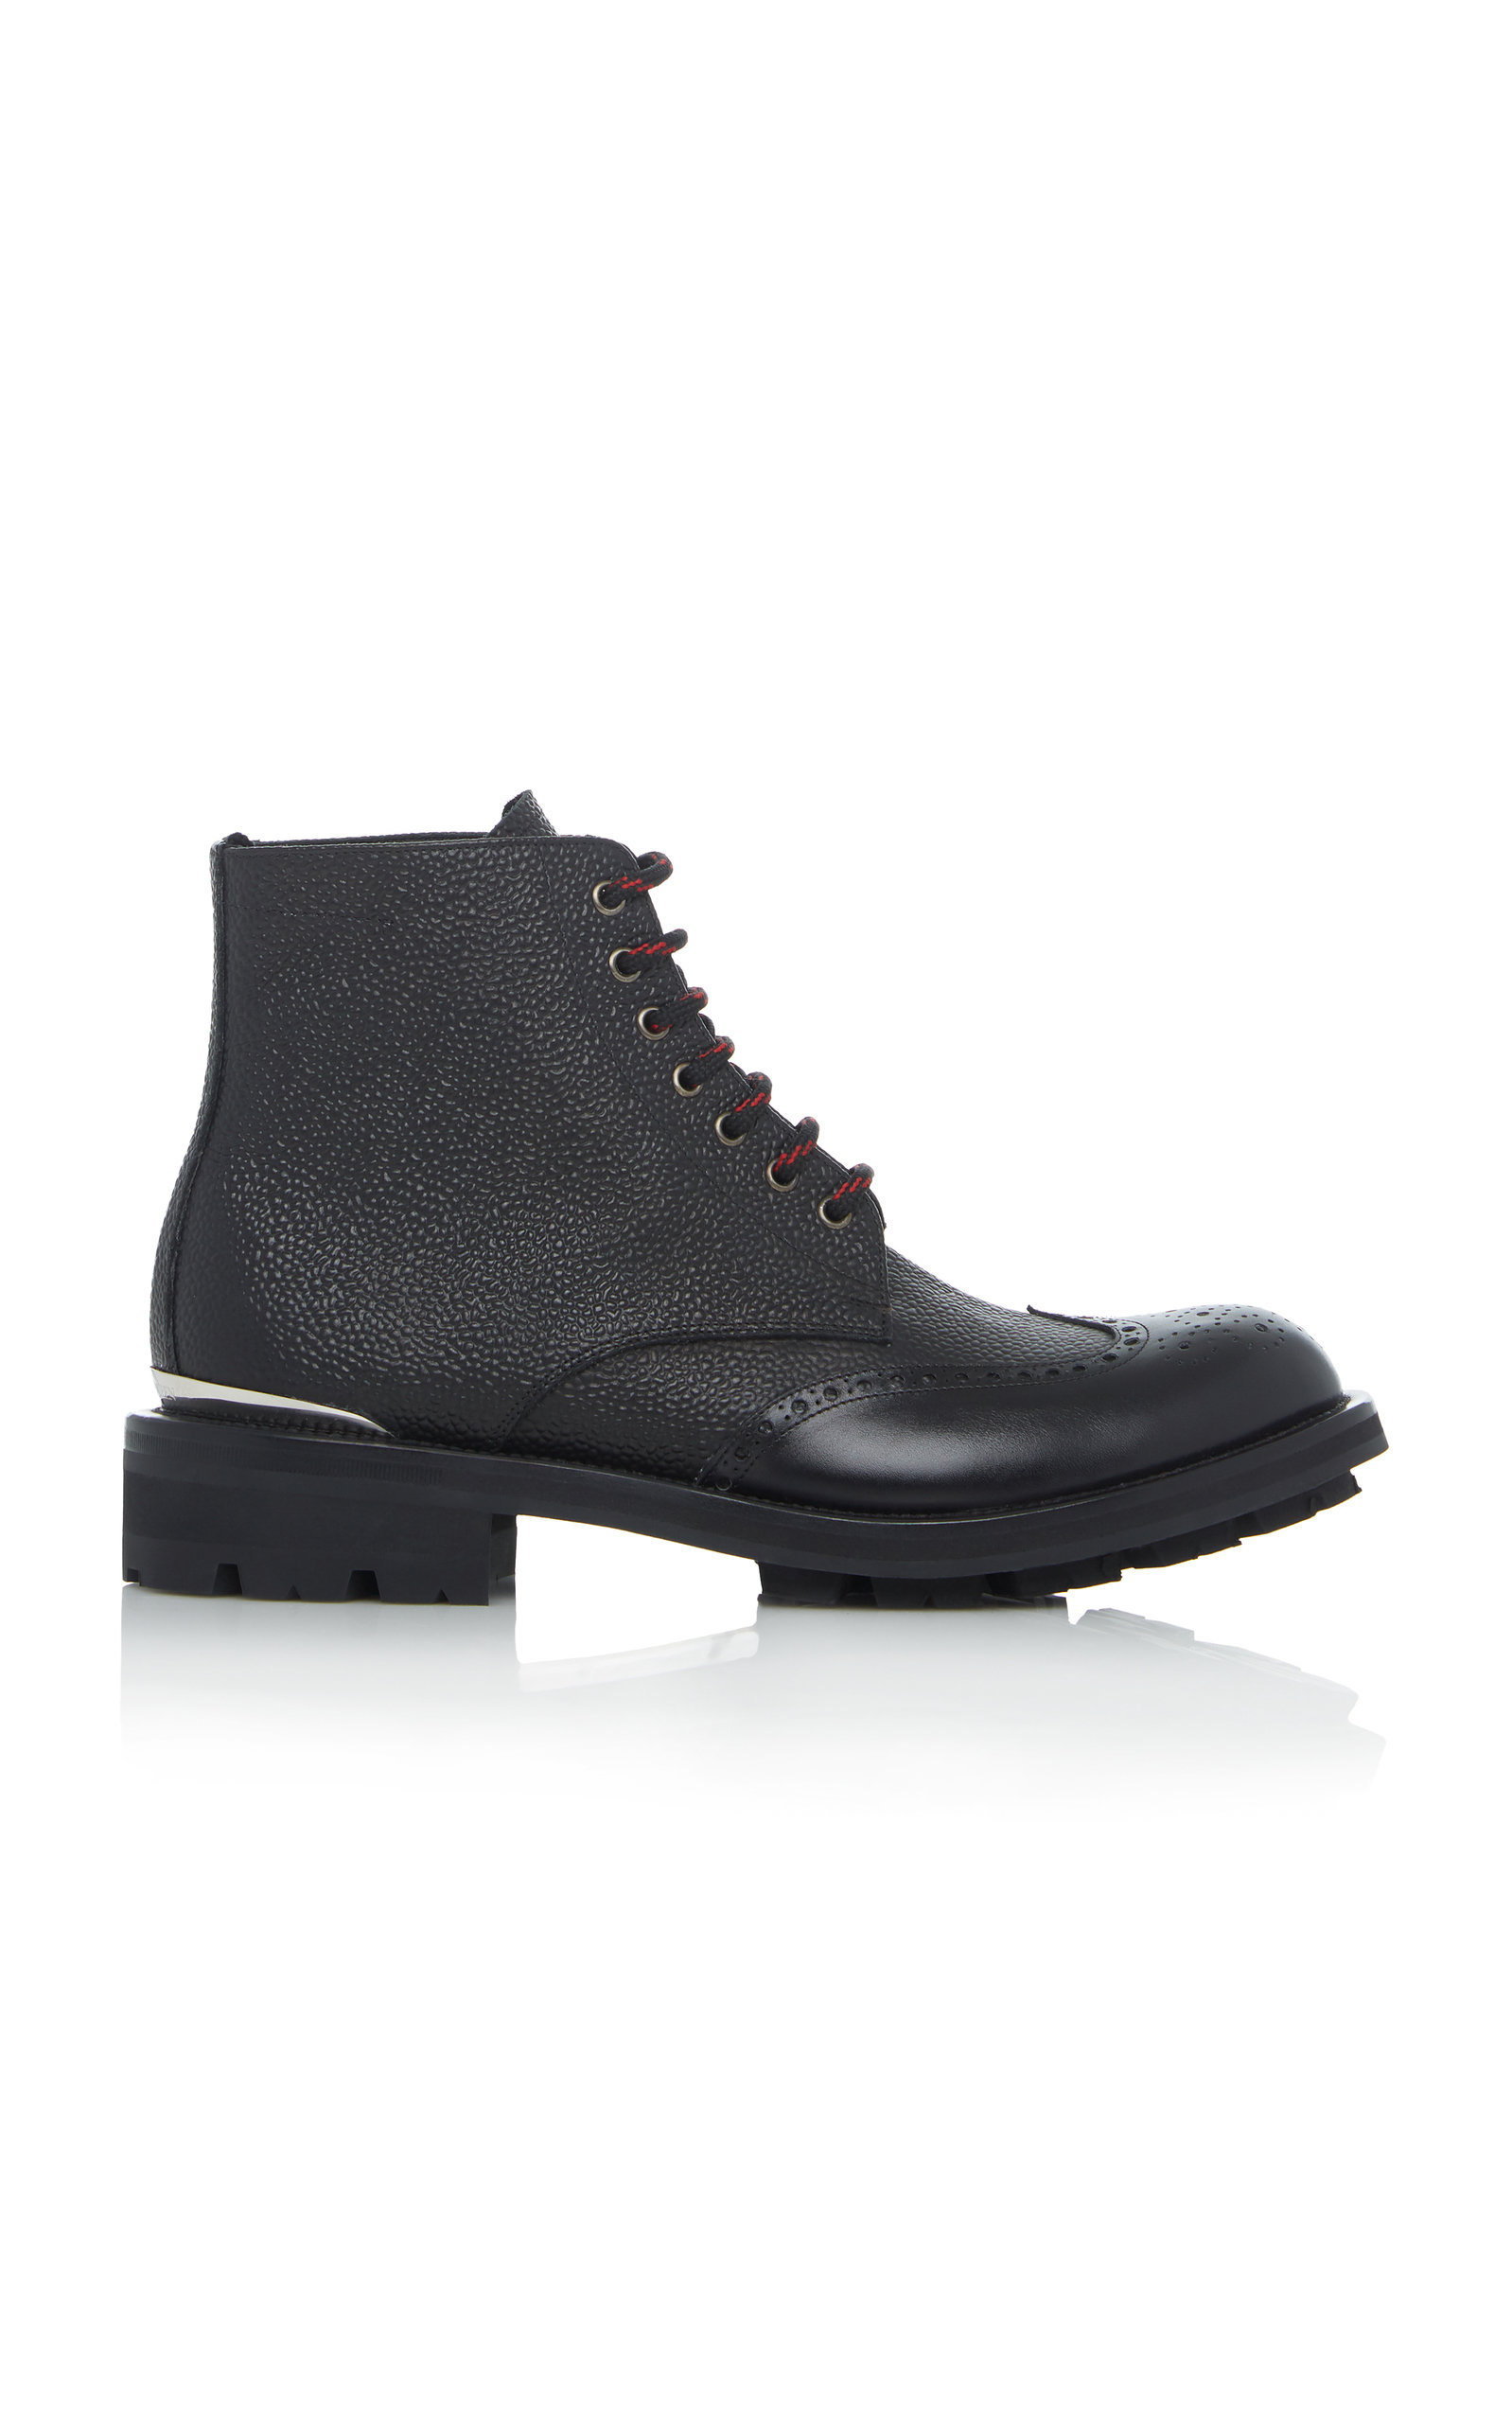 Textured Leather Brogue Boots by Alexander Mc Queen